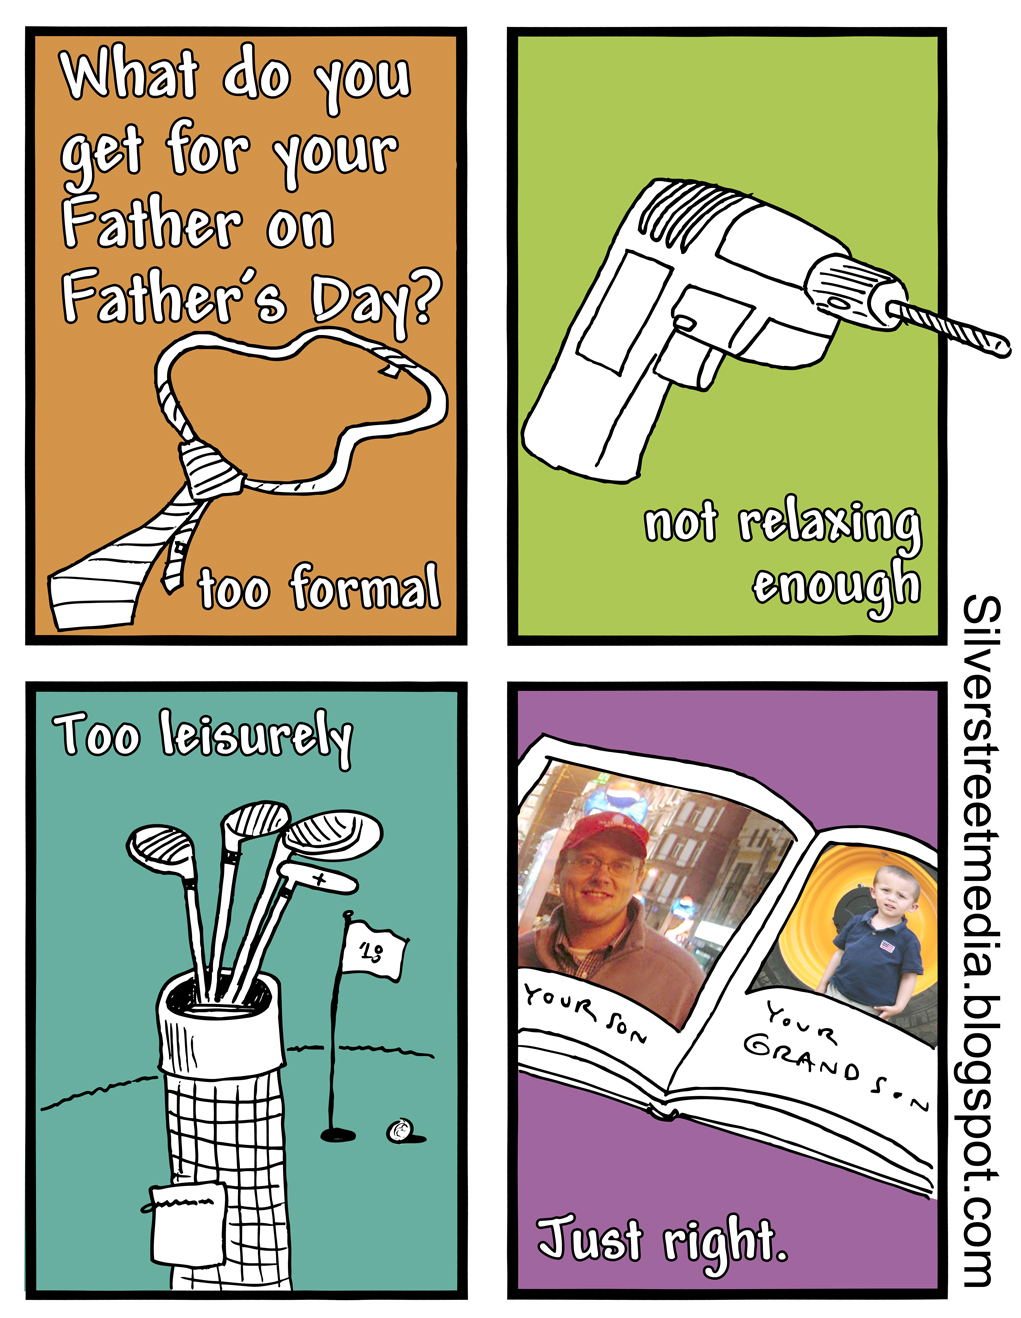 photo book fun what do you get for your father on father s day what do you get for your father on father s day the internet s first photobook comic